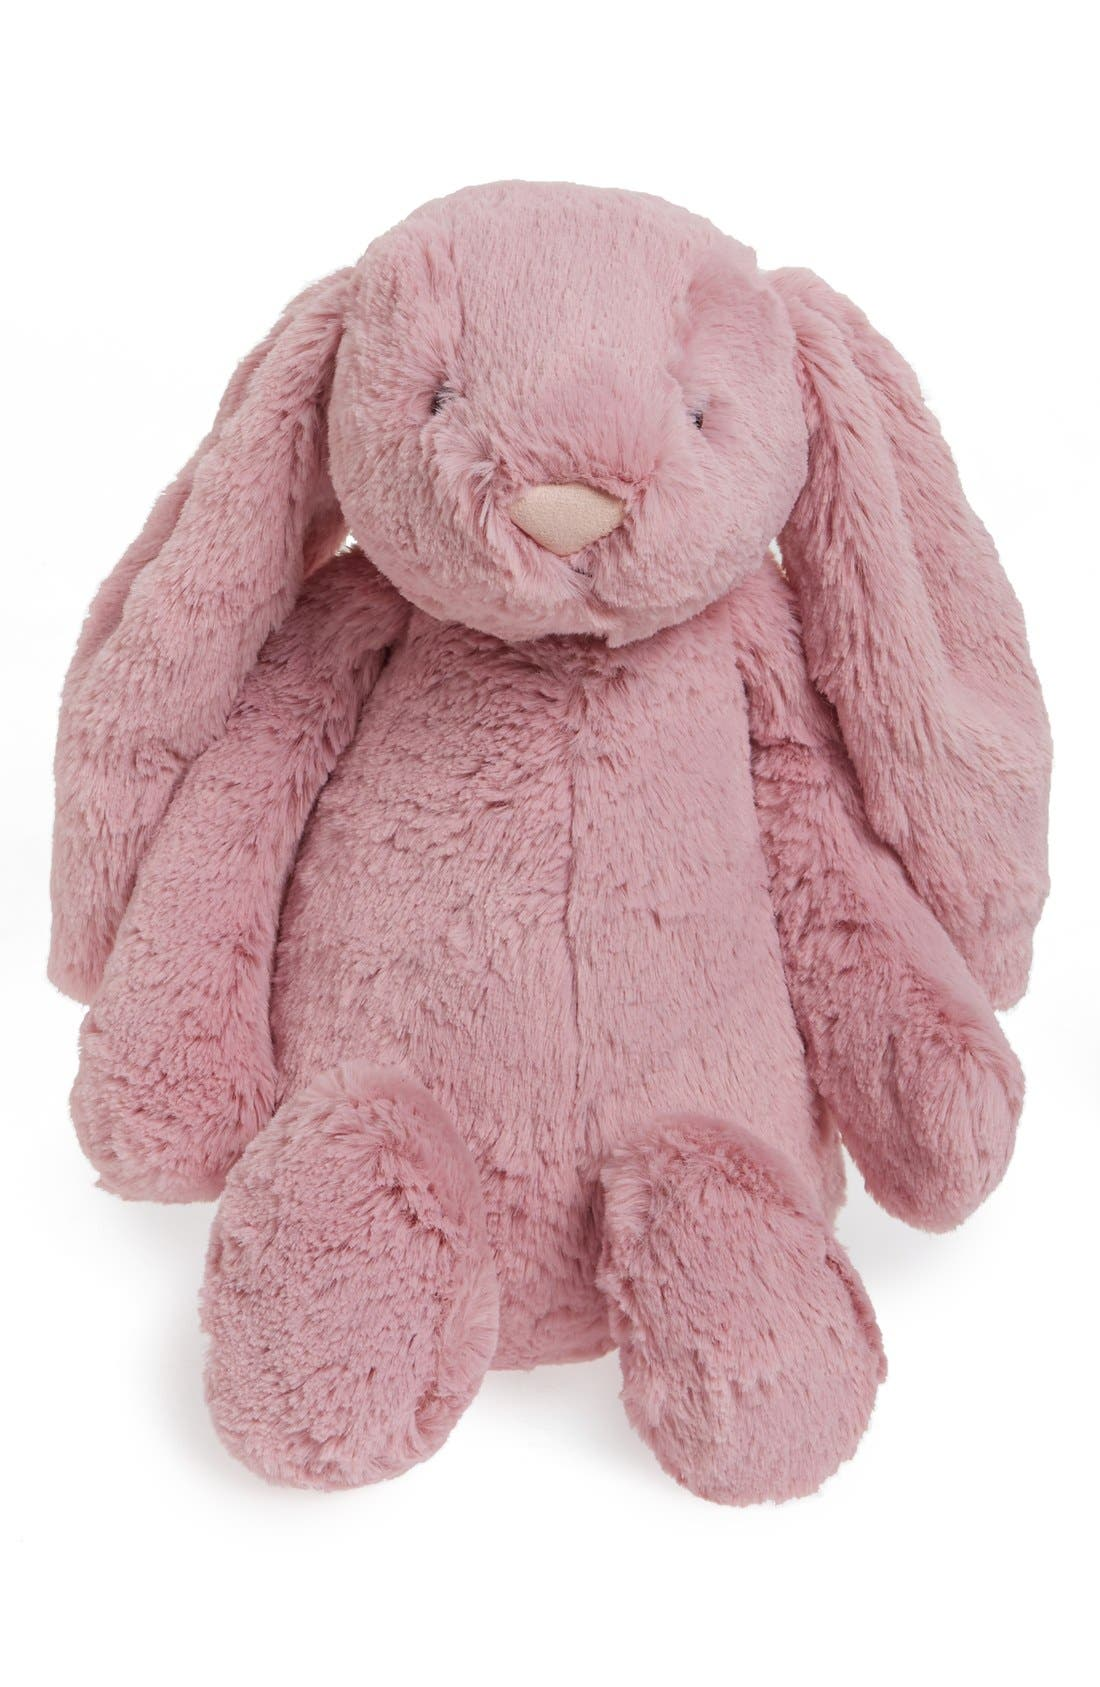 Jellycat 'Large Bashful Bunny' Stuffed Animal